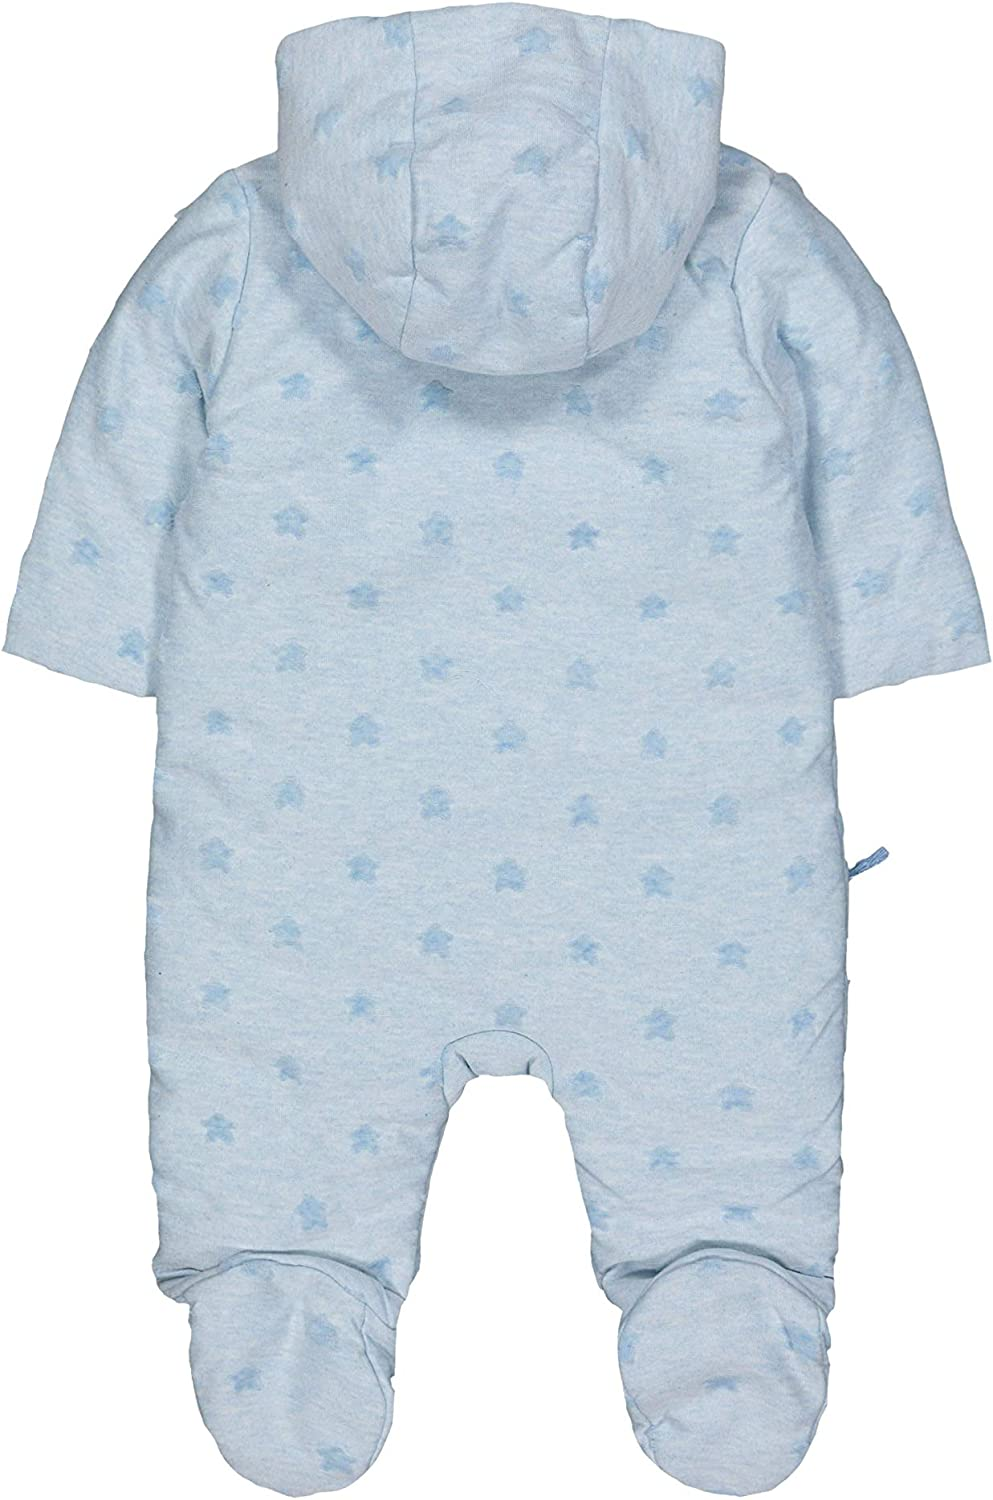 Mothercare NB MFB Star Velour Pramsuit Set Unisex-Bimbi